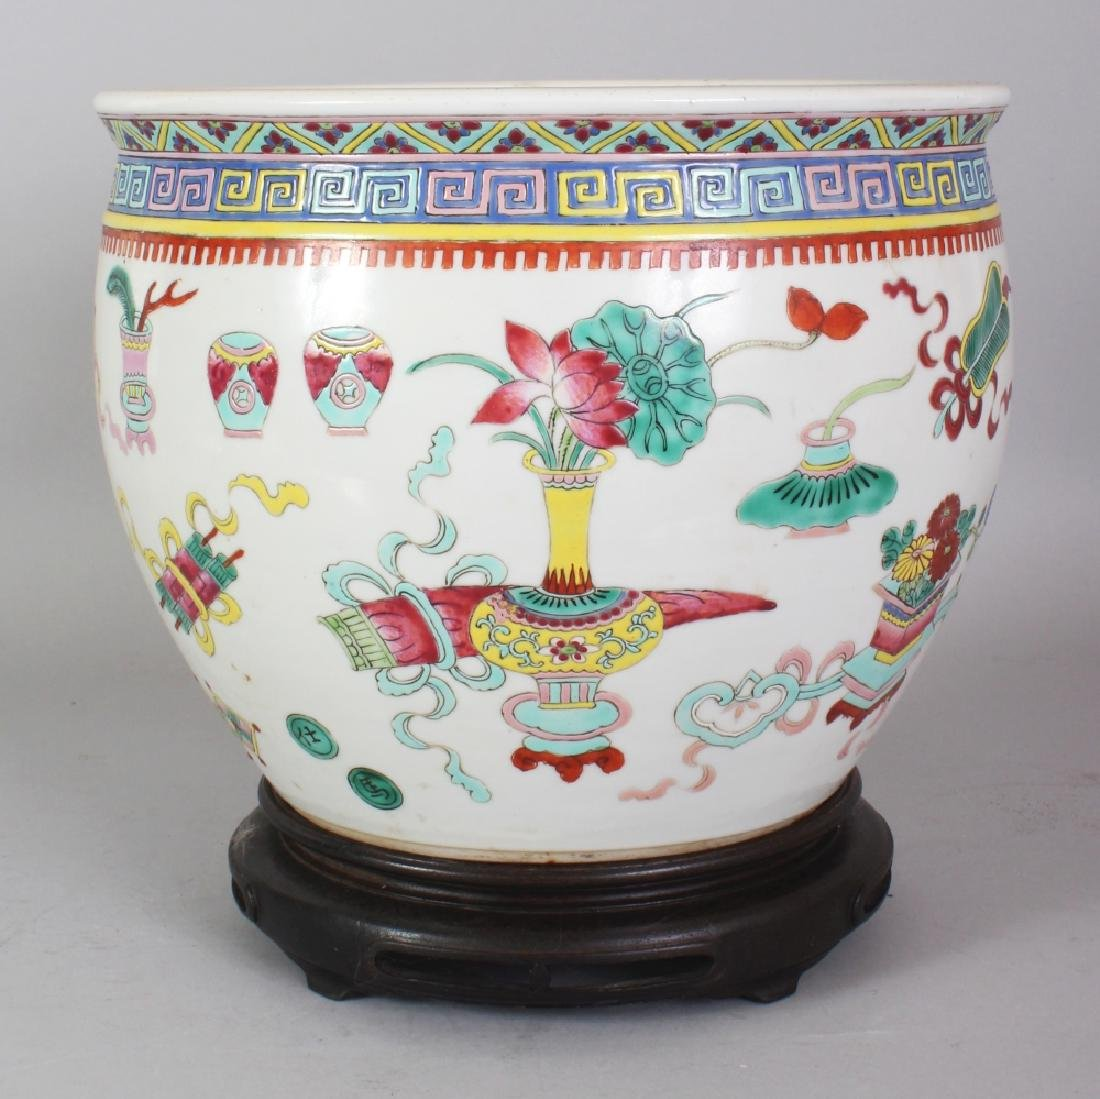 A LATE 19TH CENTURY CHINESE FAMILLE ROSE PORCELAIN